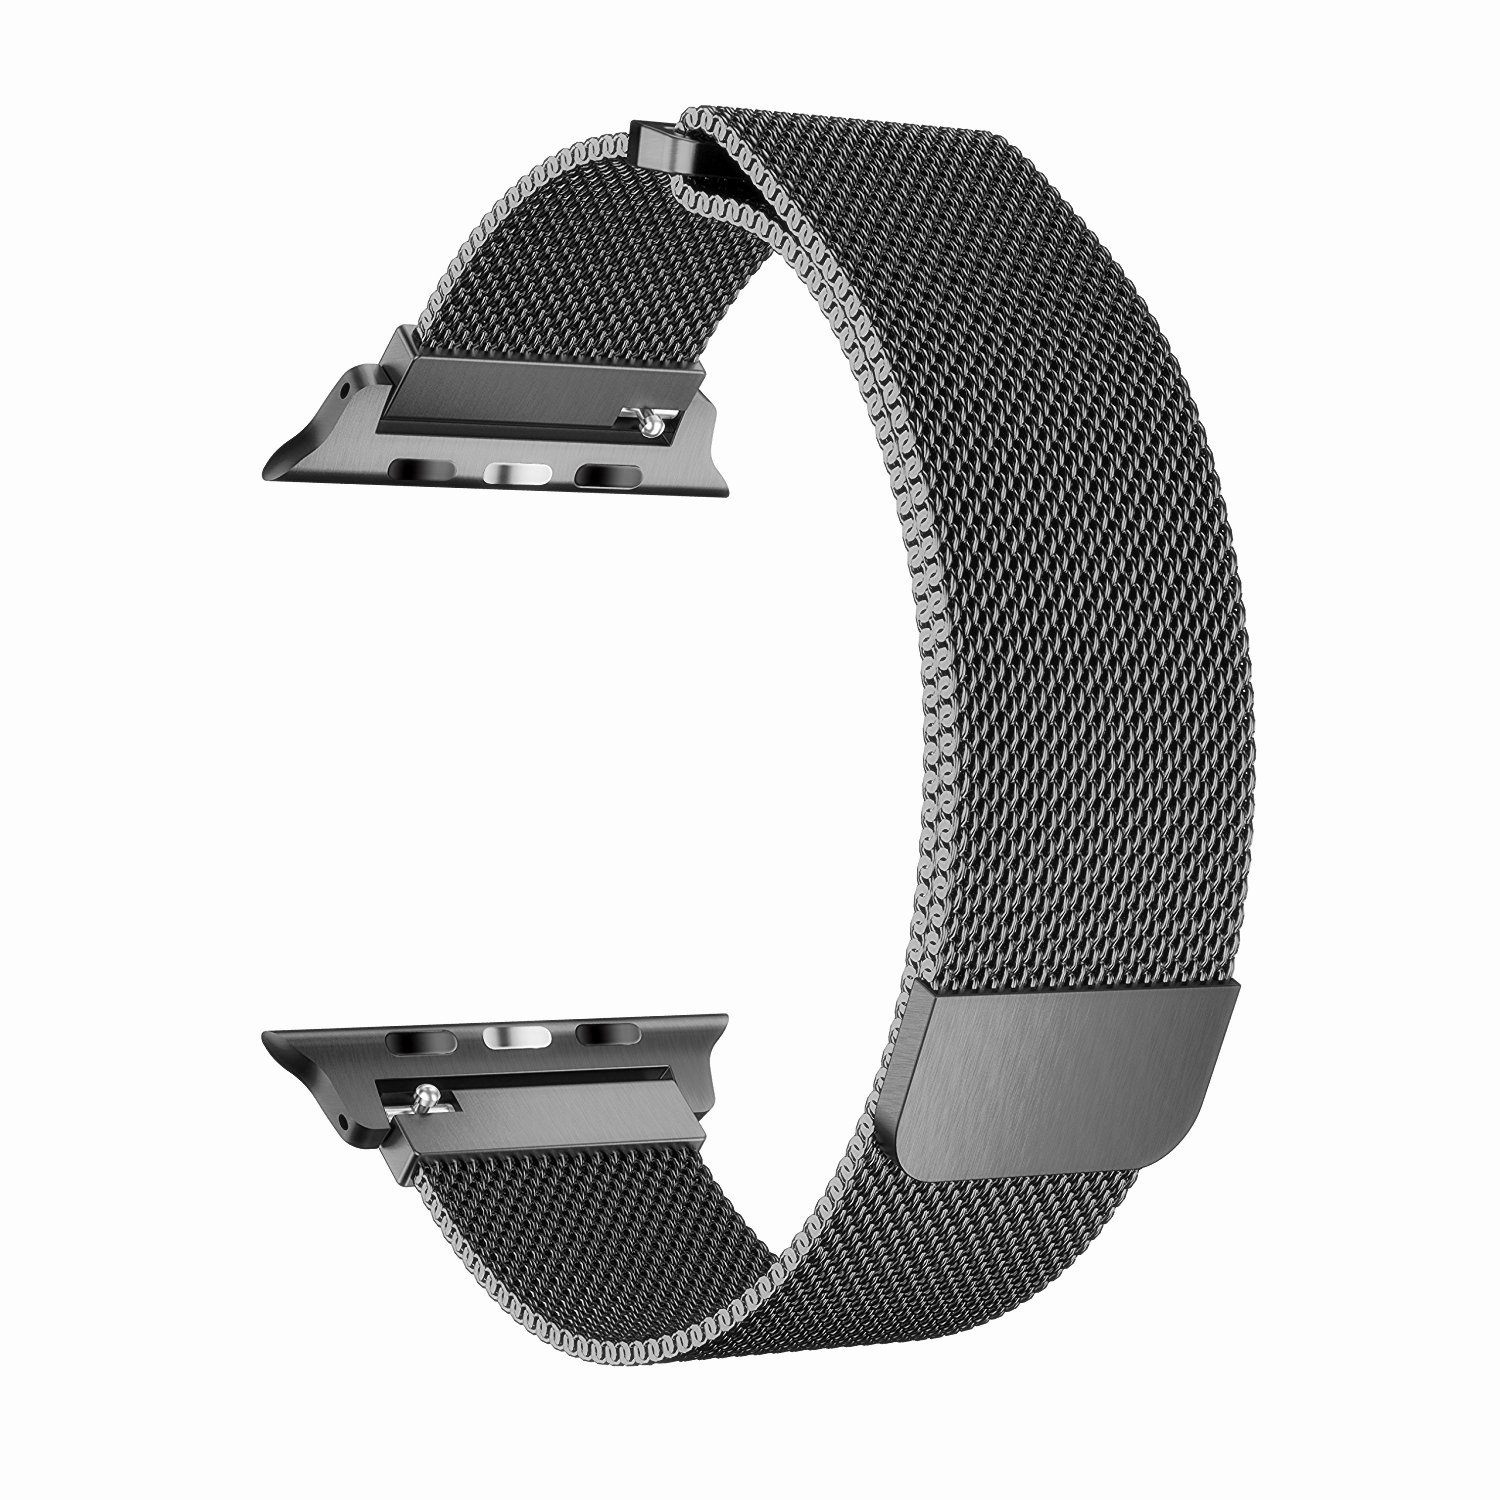 BRG for Apple Watch Band 38mm 42mm, Stainless Steel Mesh Milanese Loop with Adjustable Magnetic Closure Replacement iWatch Band for Apple Watch Series 3 2 1 (space gray, 42mm)